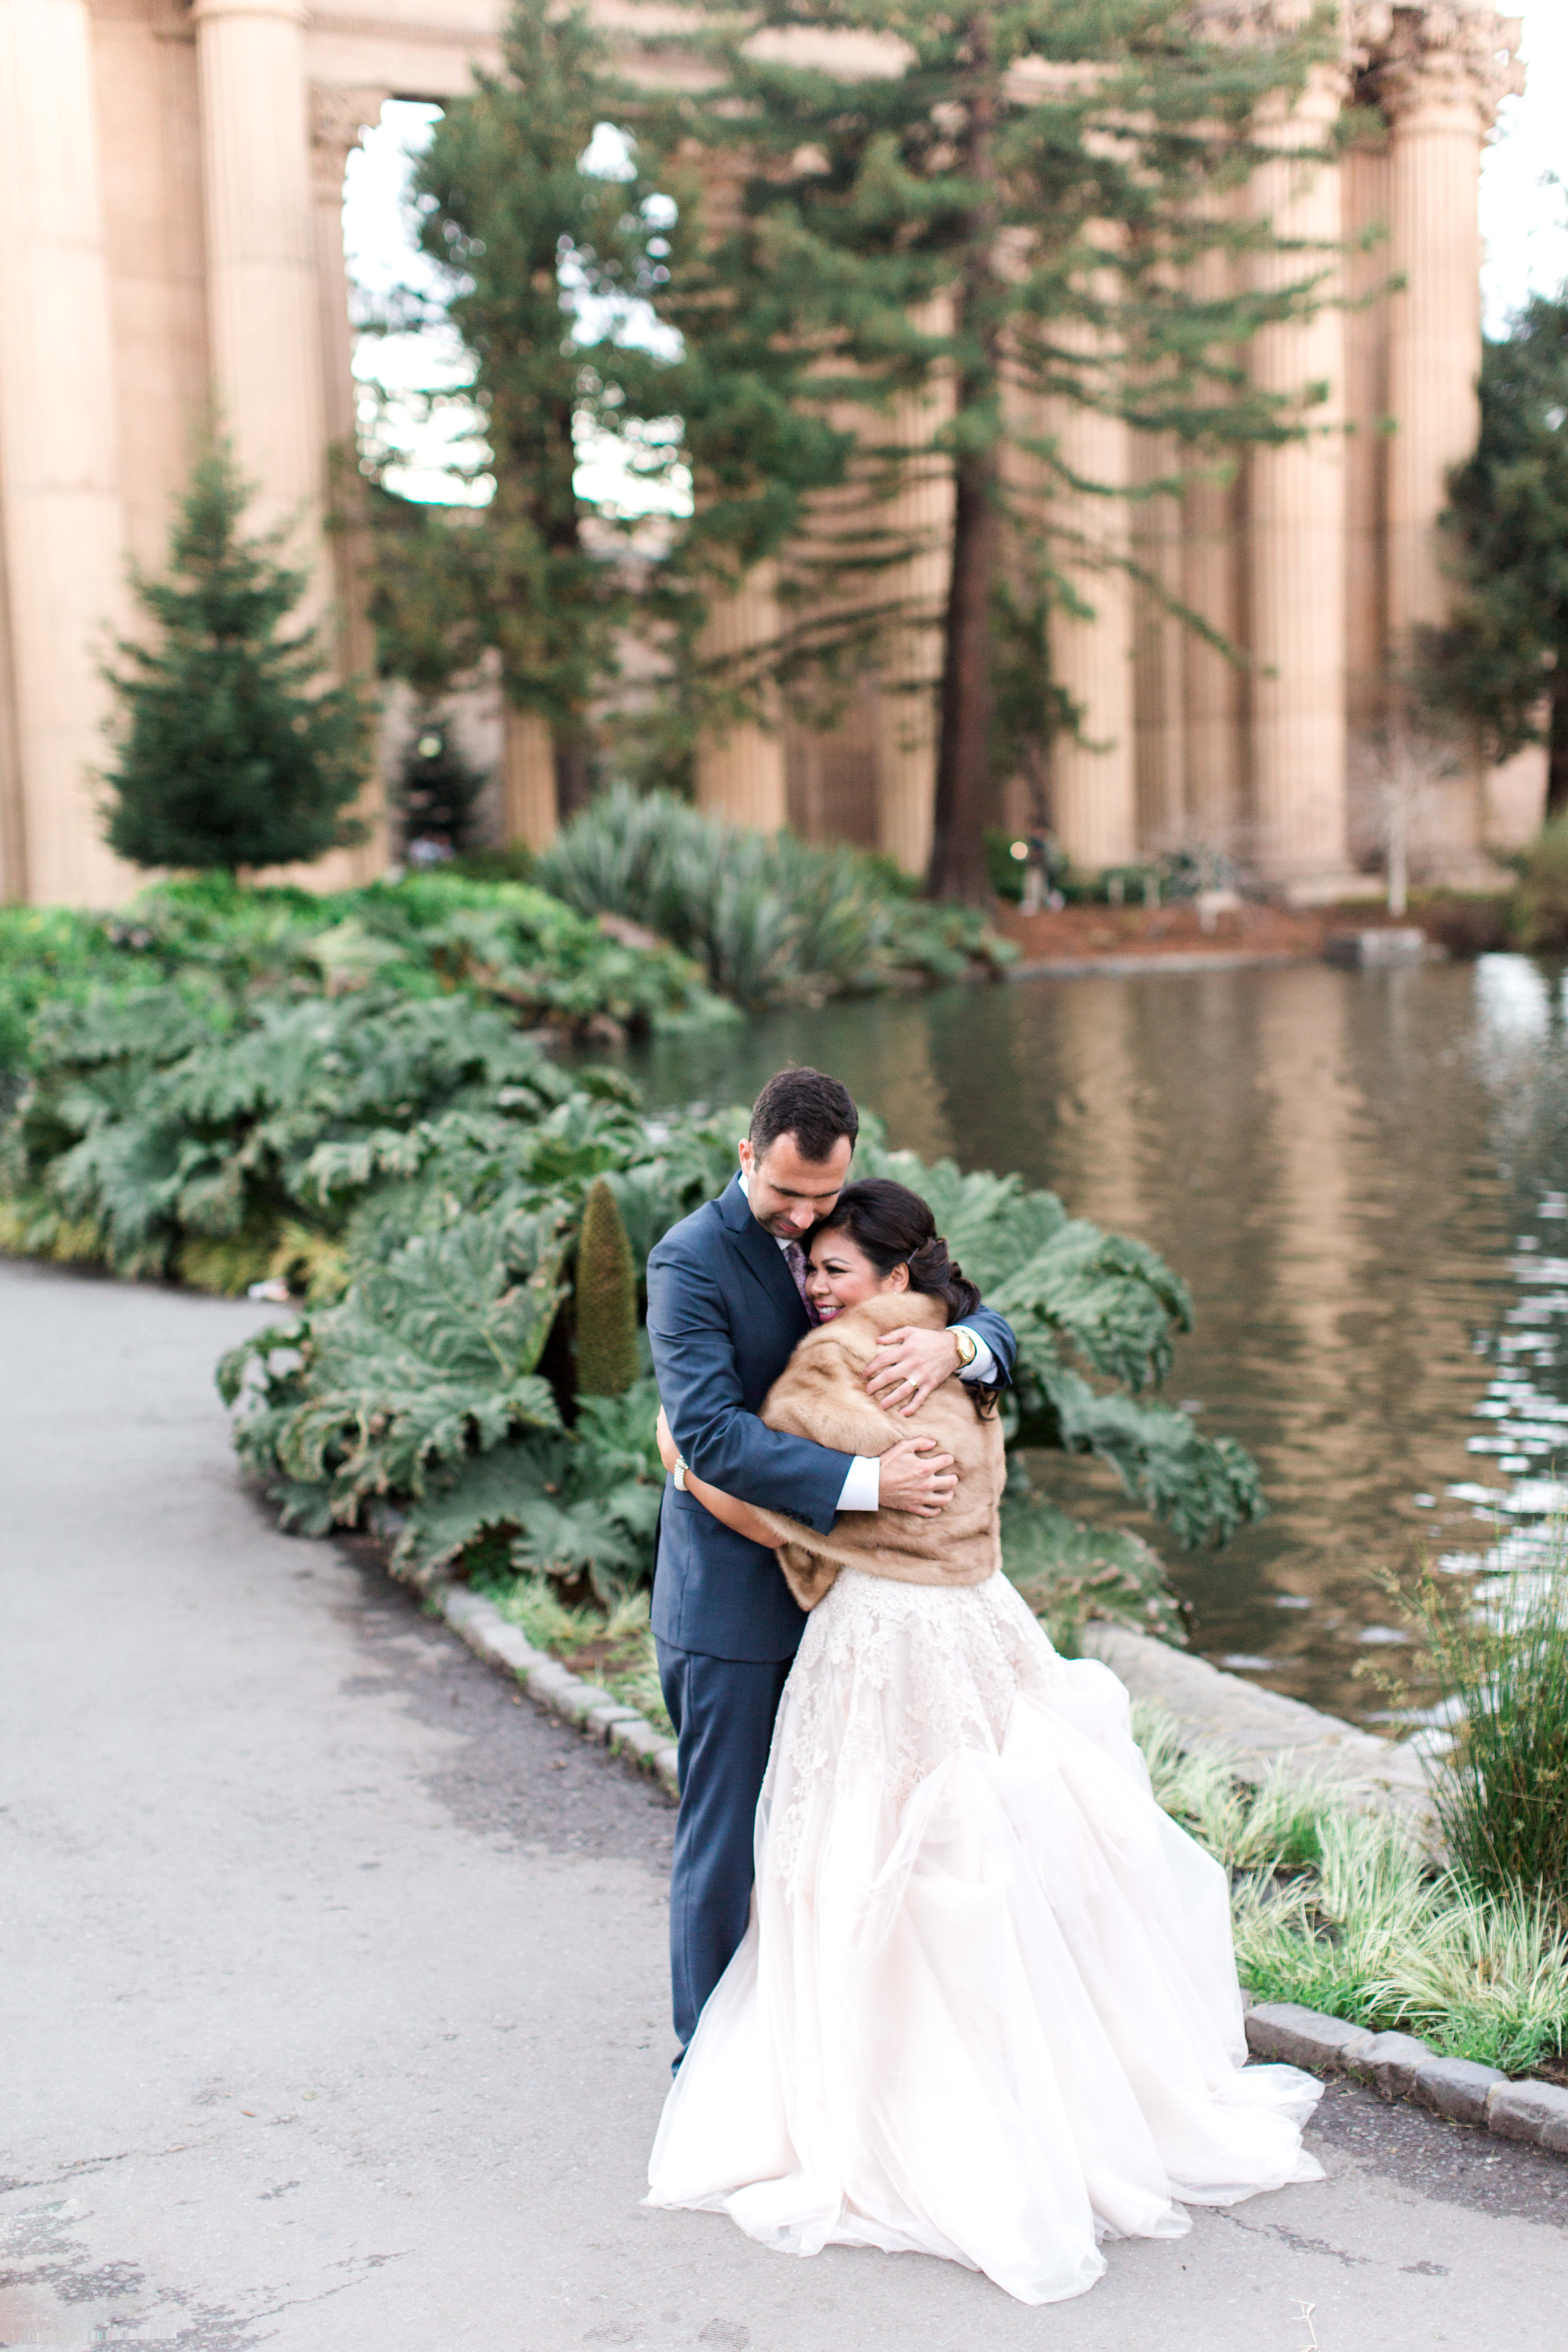 style-inspired-wedding-at-firehouse-8-in-san-francisco-82.jpg